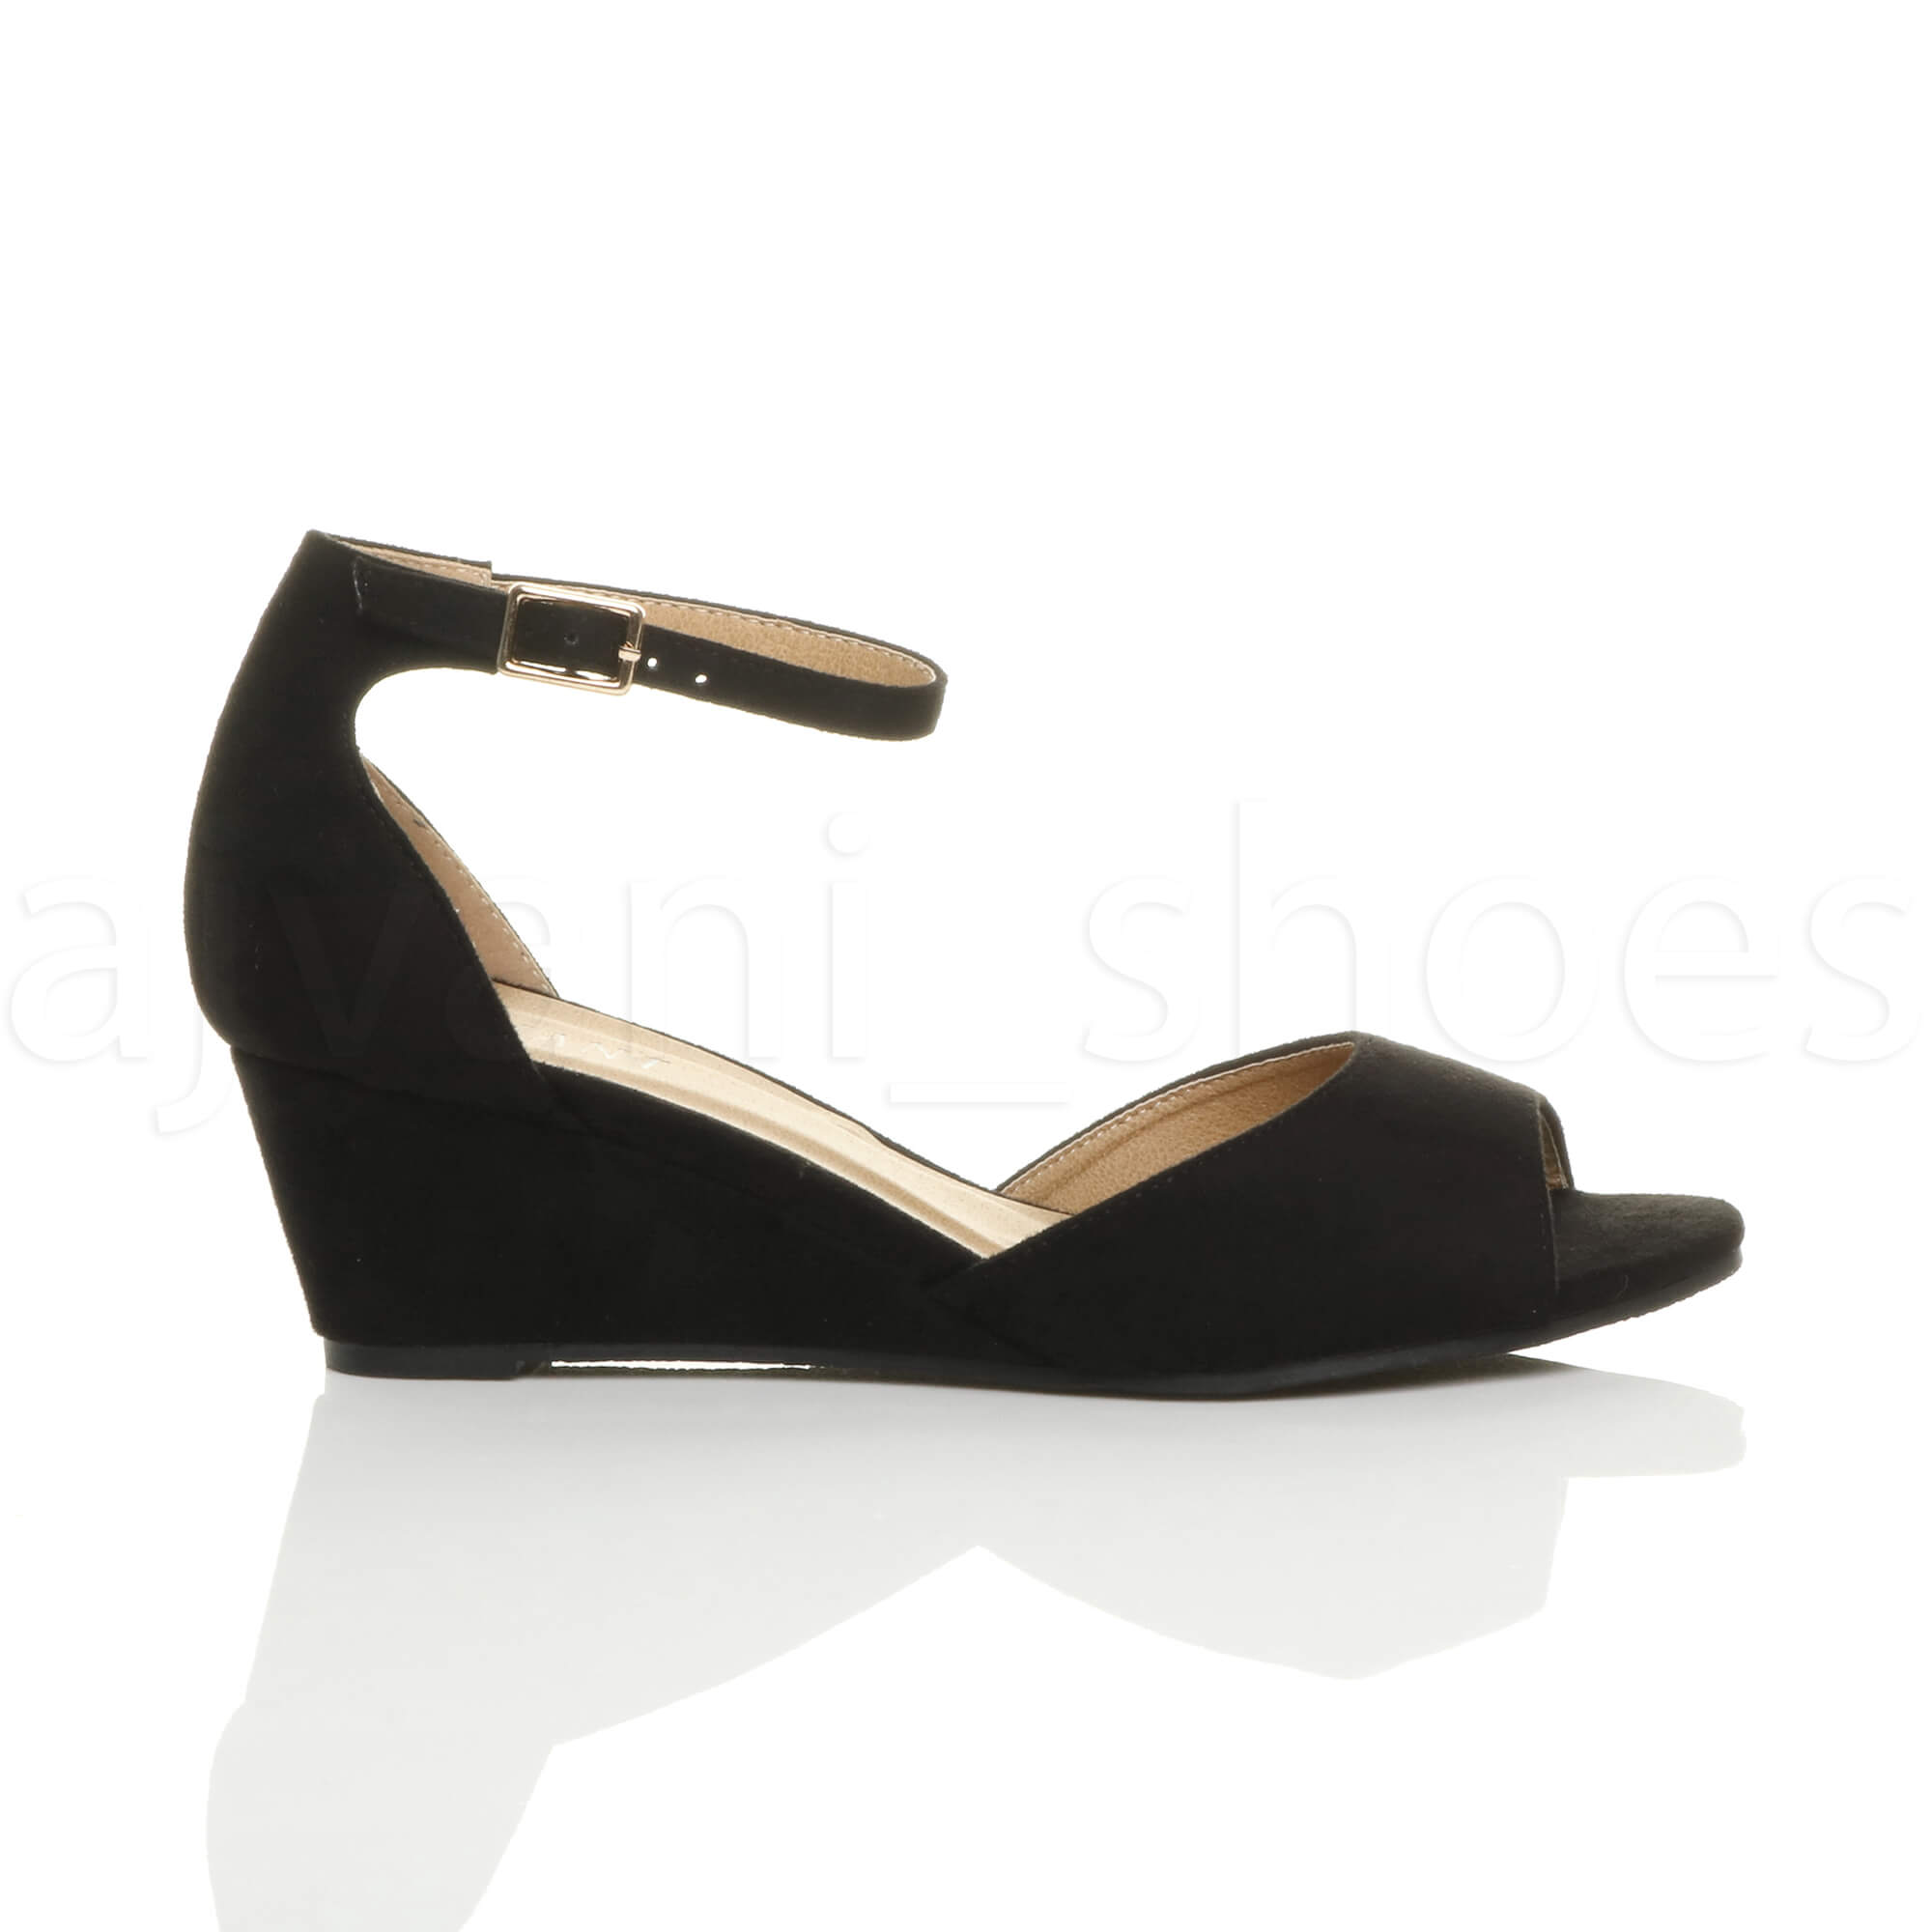 WOMENS-LADIES-LOW-MID-WEDGE-HEEL-ANKLE-STRAP-SMART-CASUAL-EVENING-SANDALS-SIZE thumbnail 19